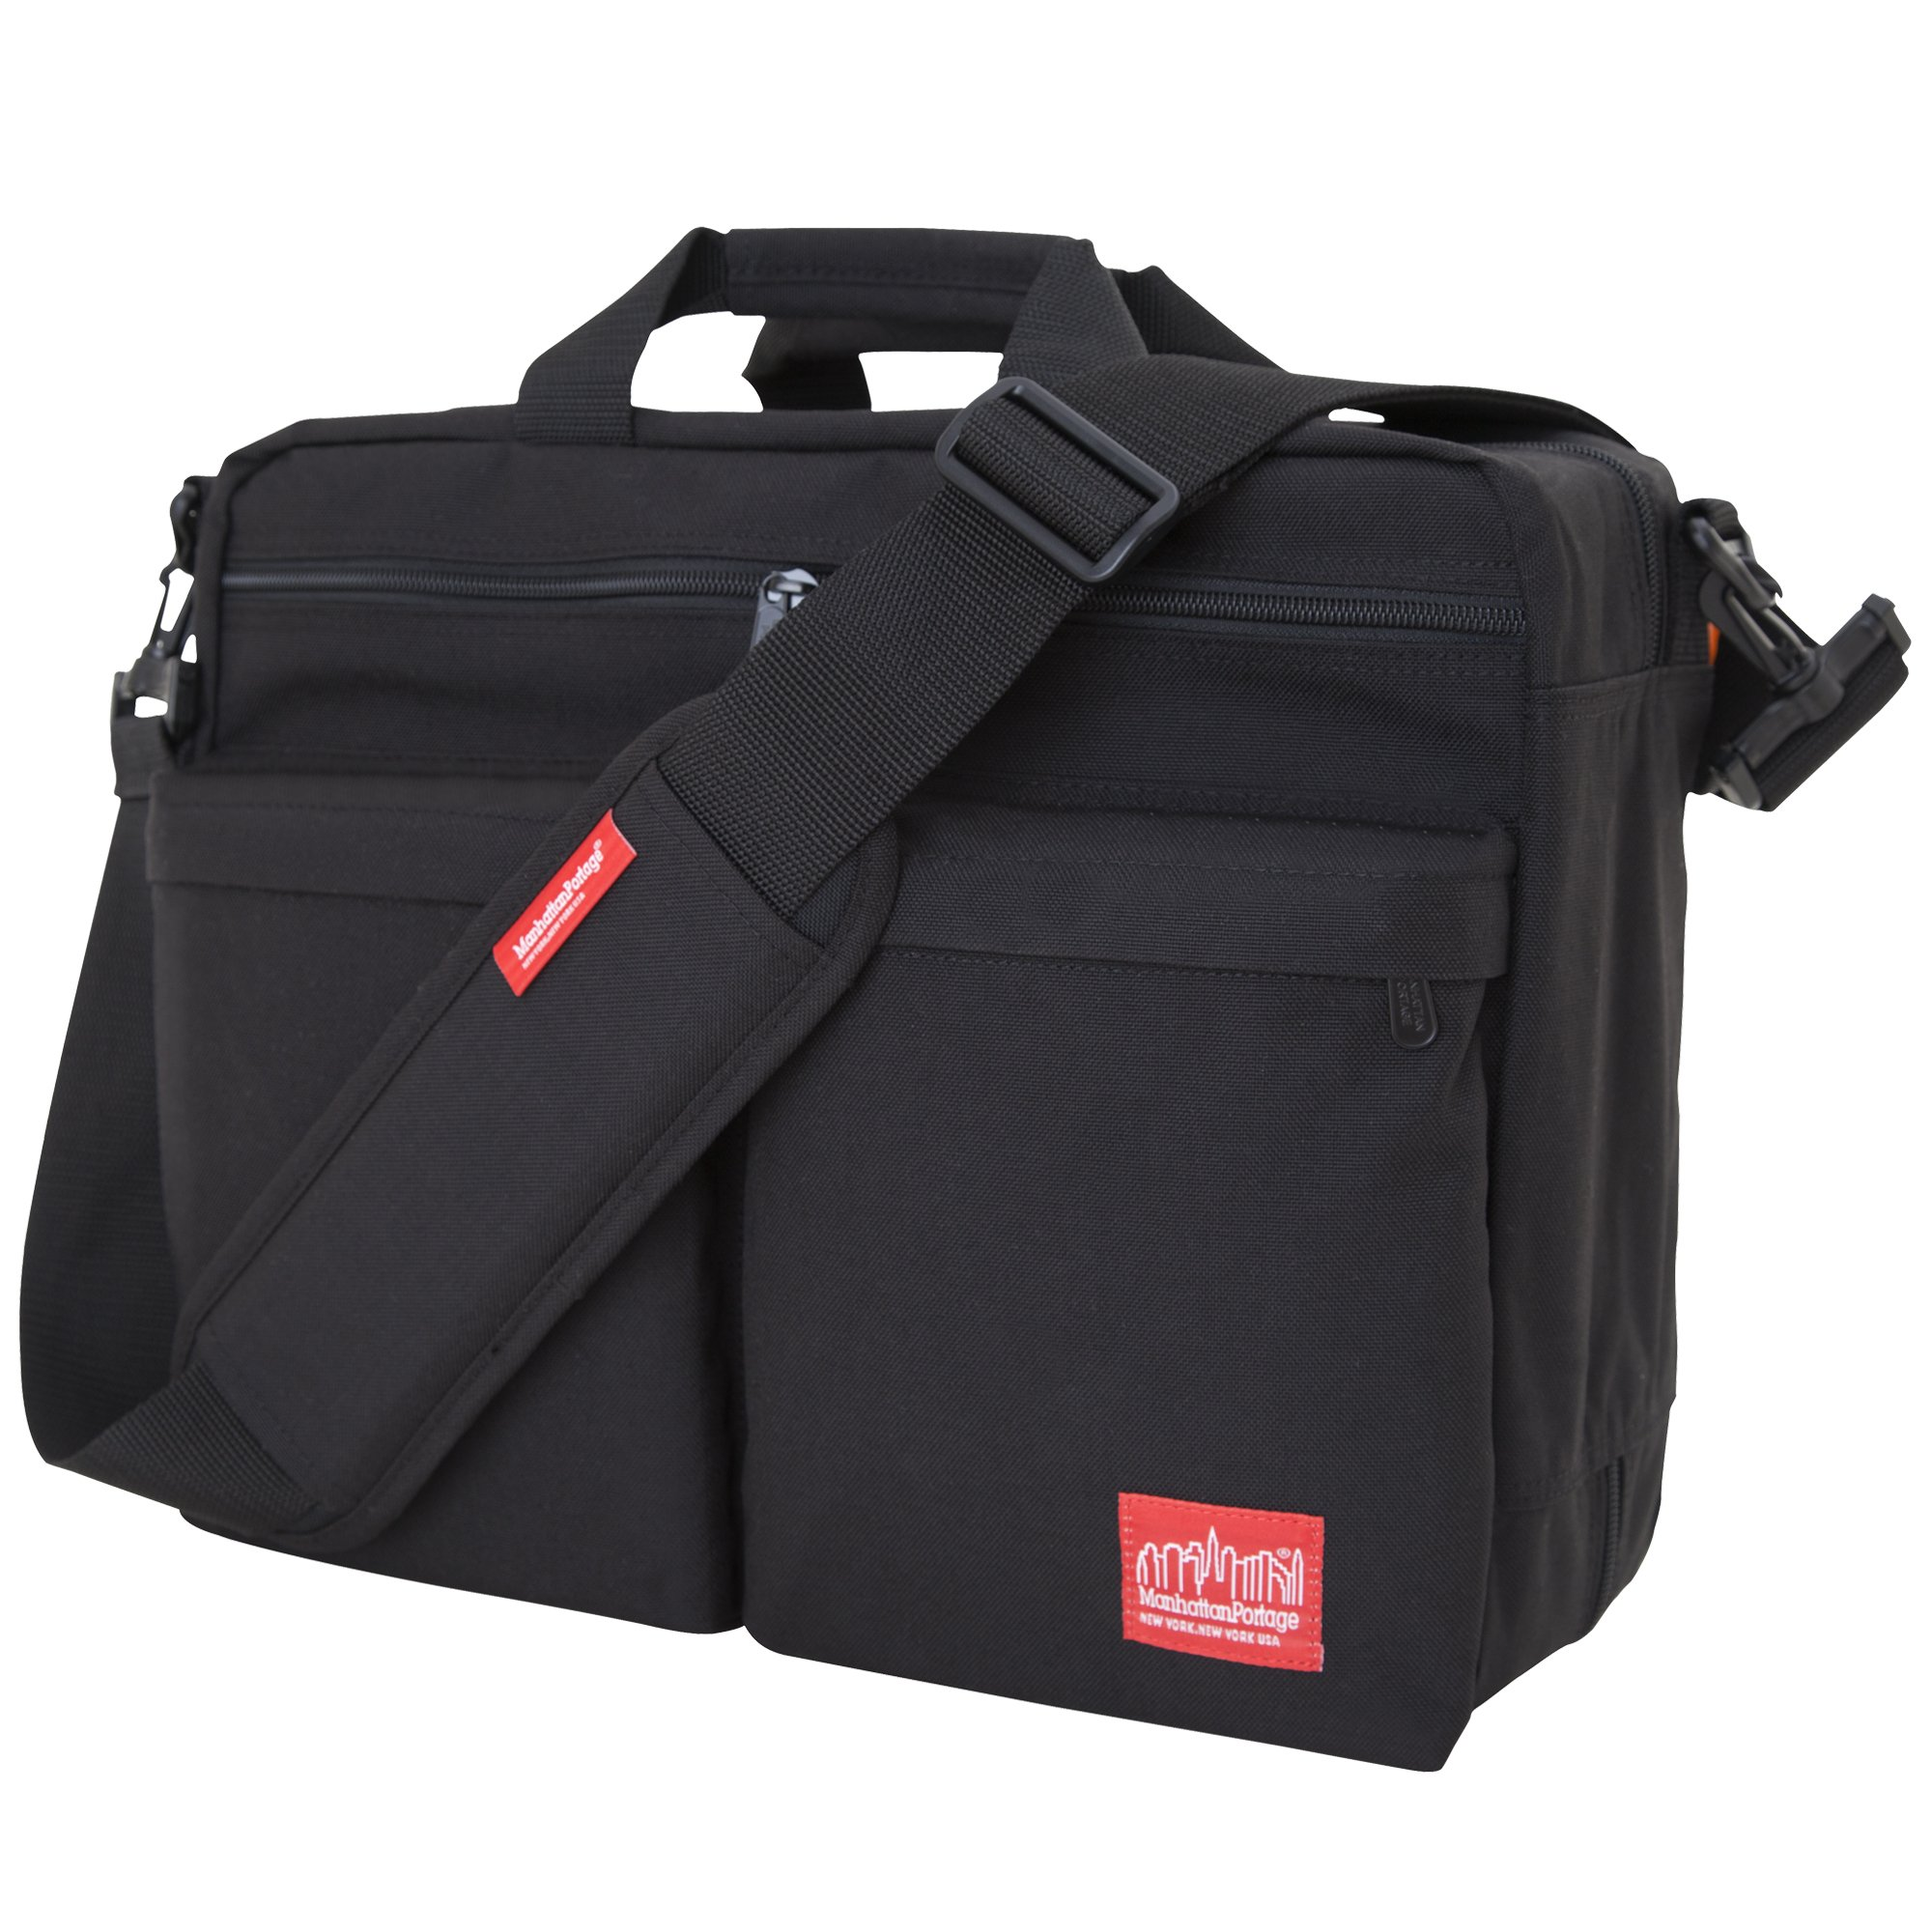 Manhattan Portage Tribeca Bag with Back Zipper, Black, One Size